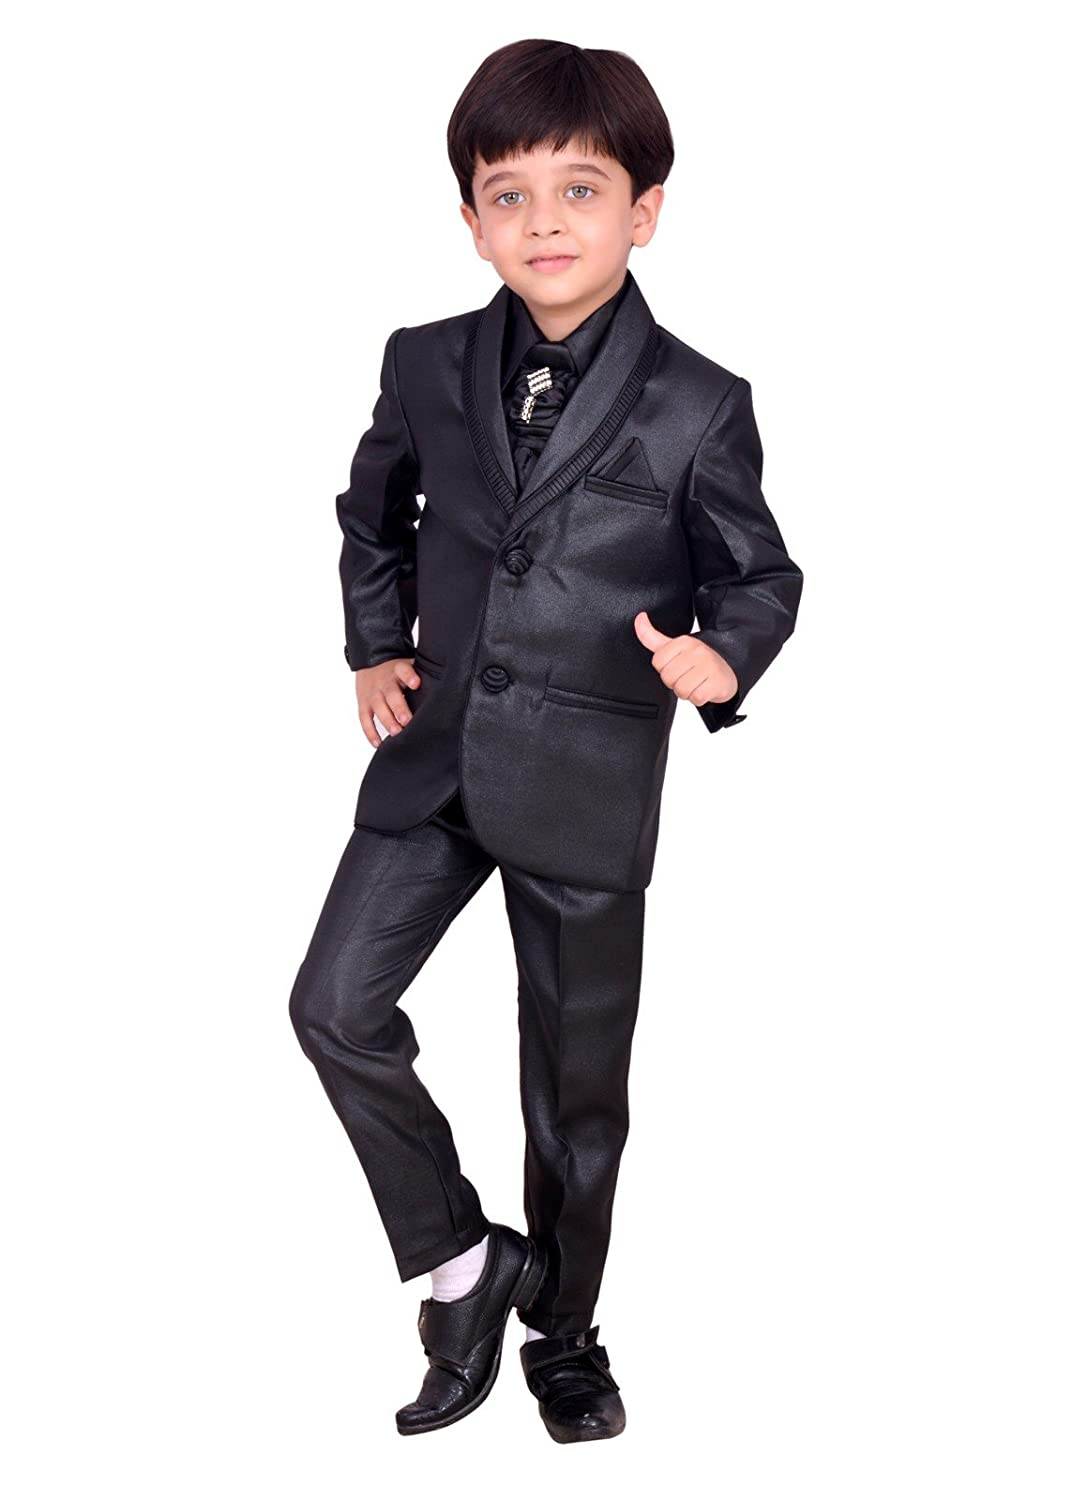 5d577246d Arshia Fashions Boys Coat Suit with Shirt Pant and Tie Kids Wear ...